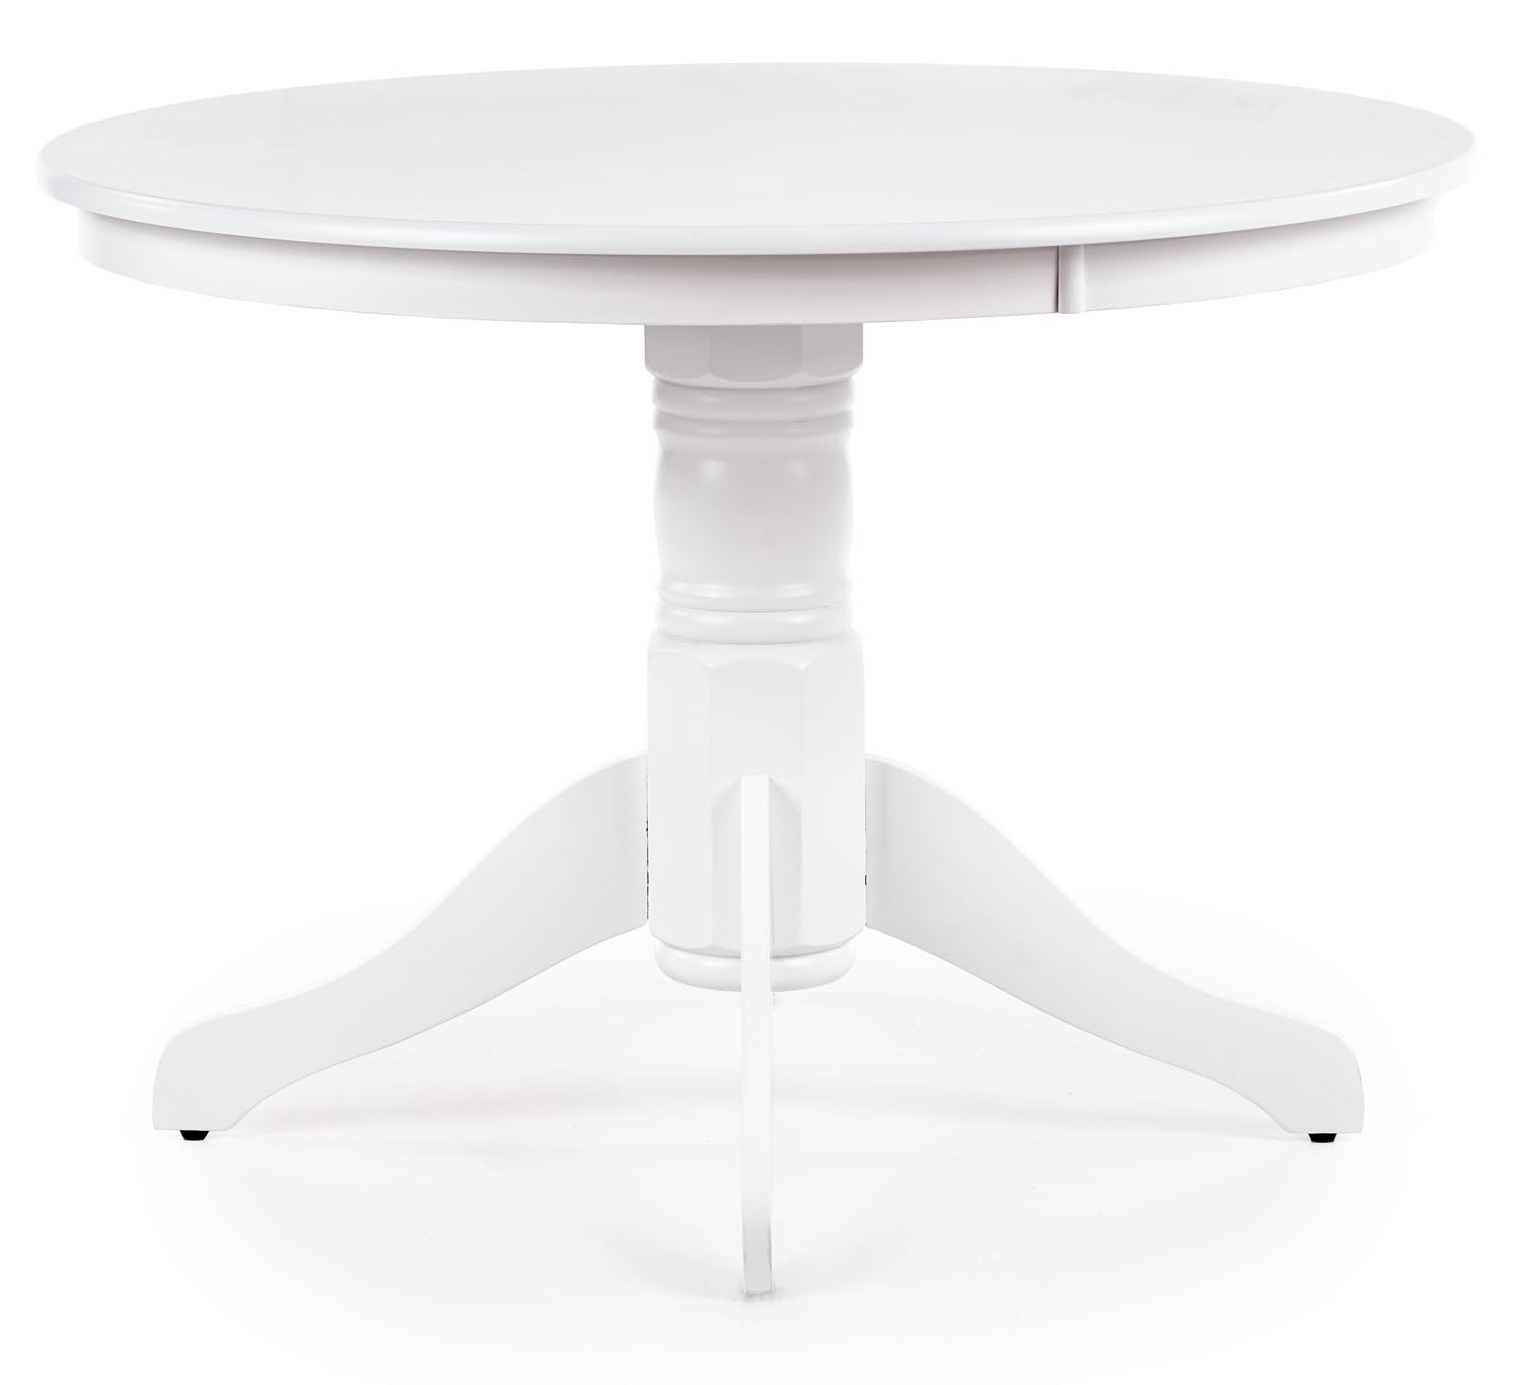 Ronde eettafel Gloster 106 cm breed in wit